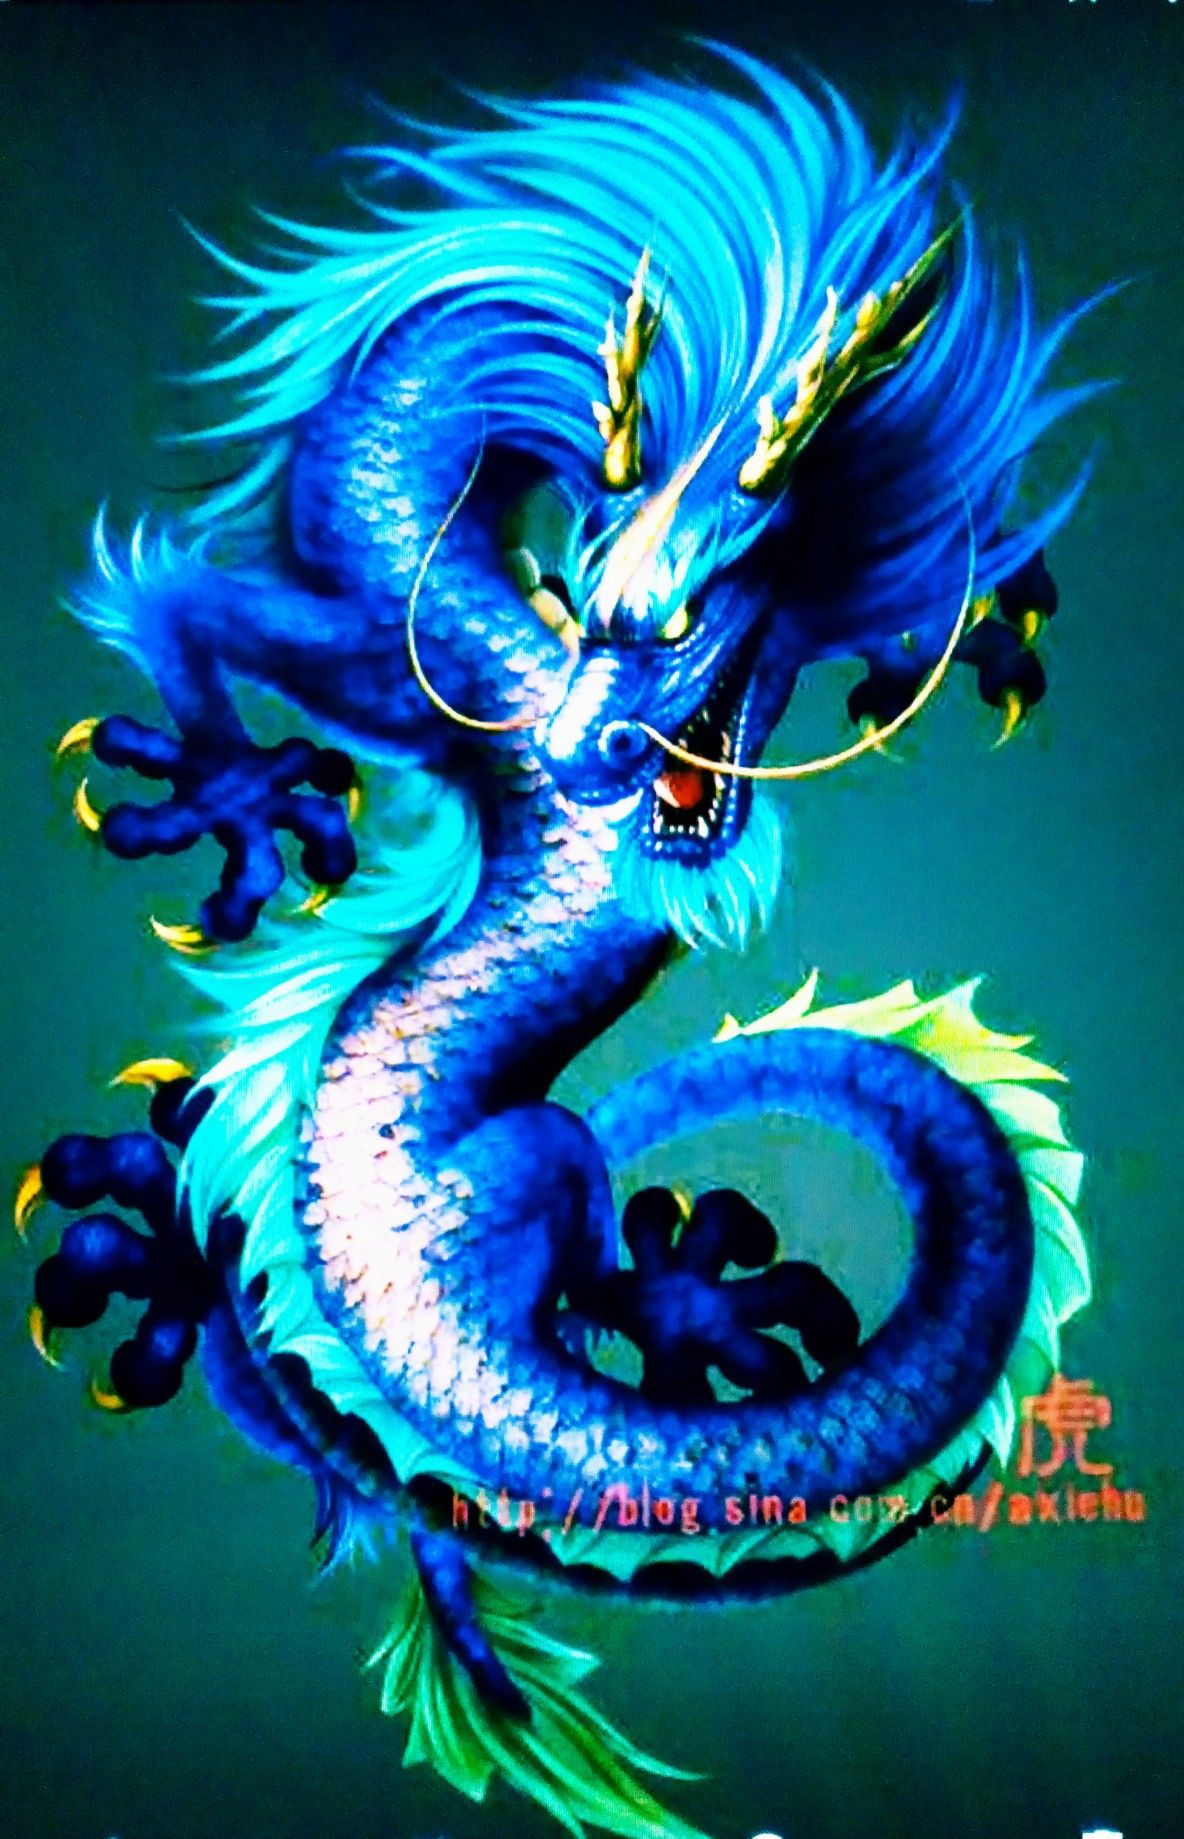 Pin By Vicky Bethke On Fairies In 2021 Dragon Artwork Dragon Artwork Fantasy Dragon Art Live wallpaper dragon tattoo